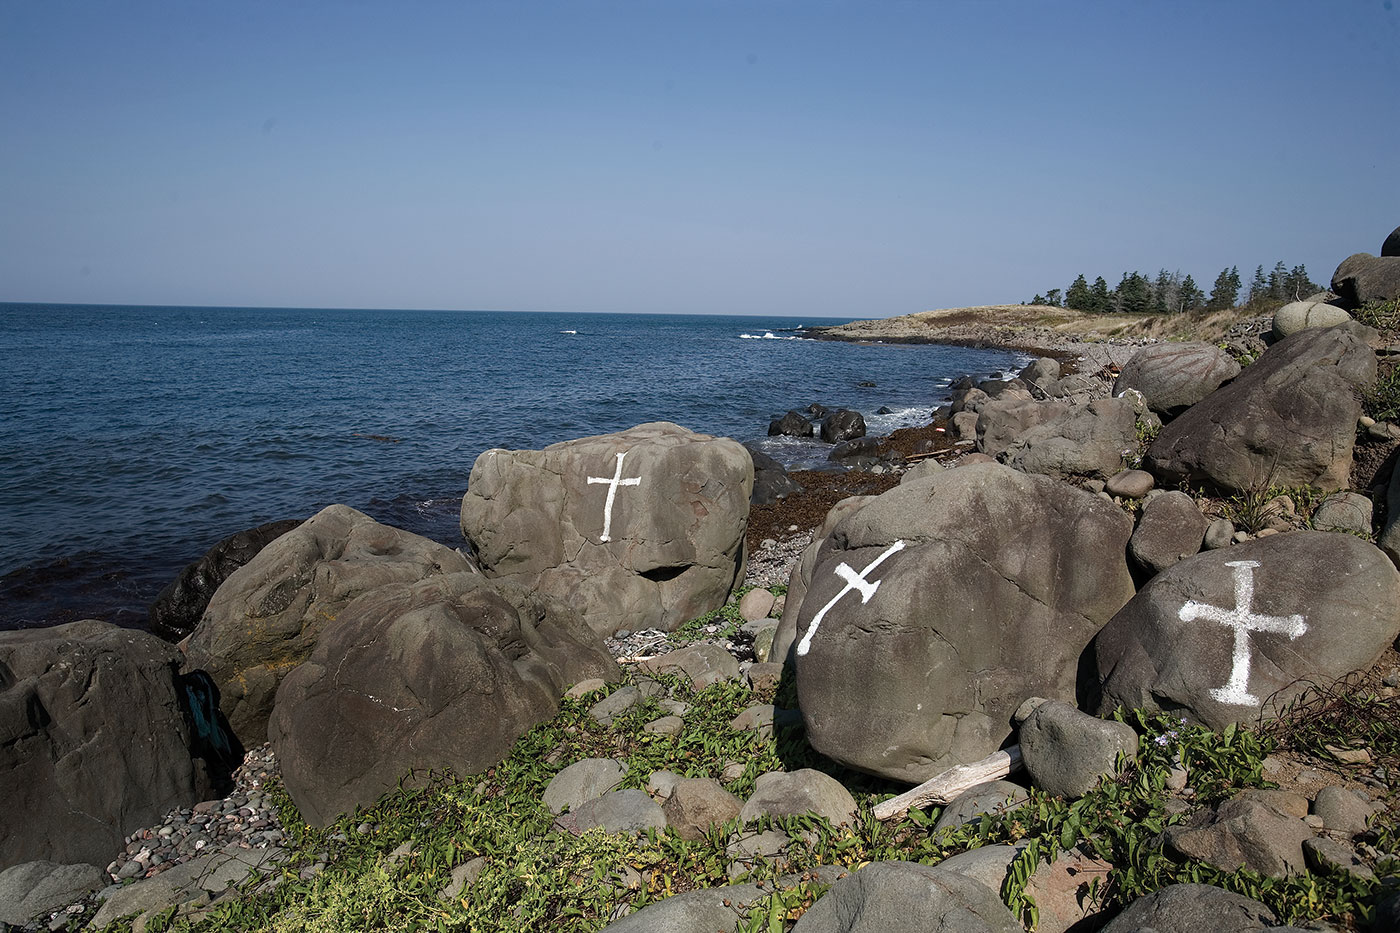 Crosses painted on rocks near the proposed Bilcon marine terminal site. The local community protested loudly against Bilcon's quarry and industrial seaport proposal. Photo by Kemp Stanton licensed under the Creative Commons Attribution-Share Alike 2.0 generic license